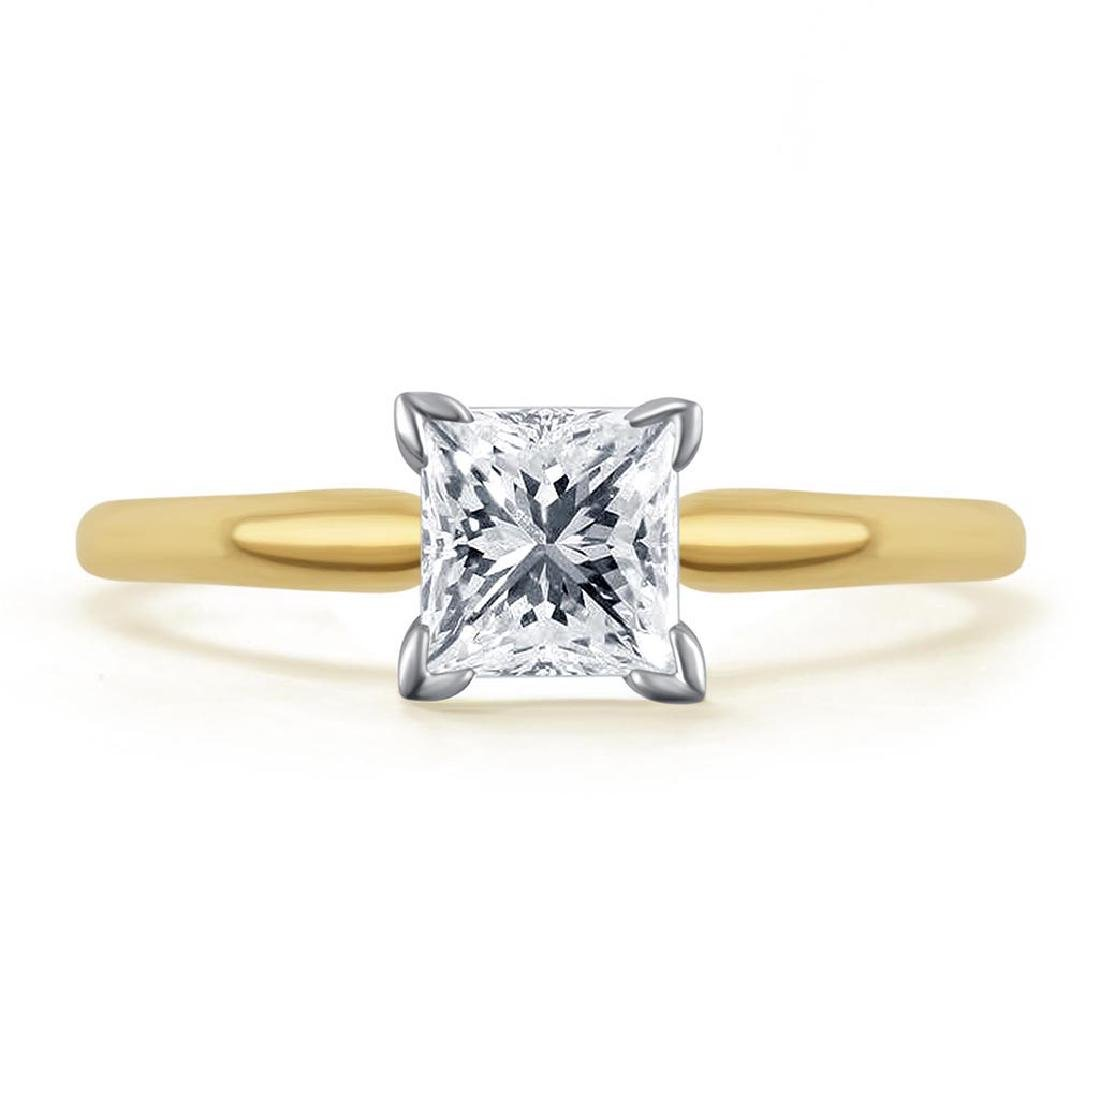 CERTIFIED 1 CTW PRINCESS K/SI1 SOLITAIRE RING IN 14K YE